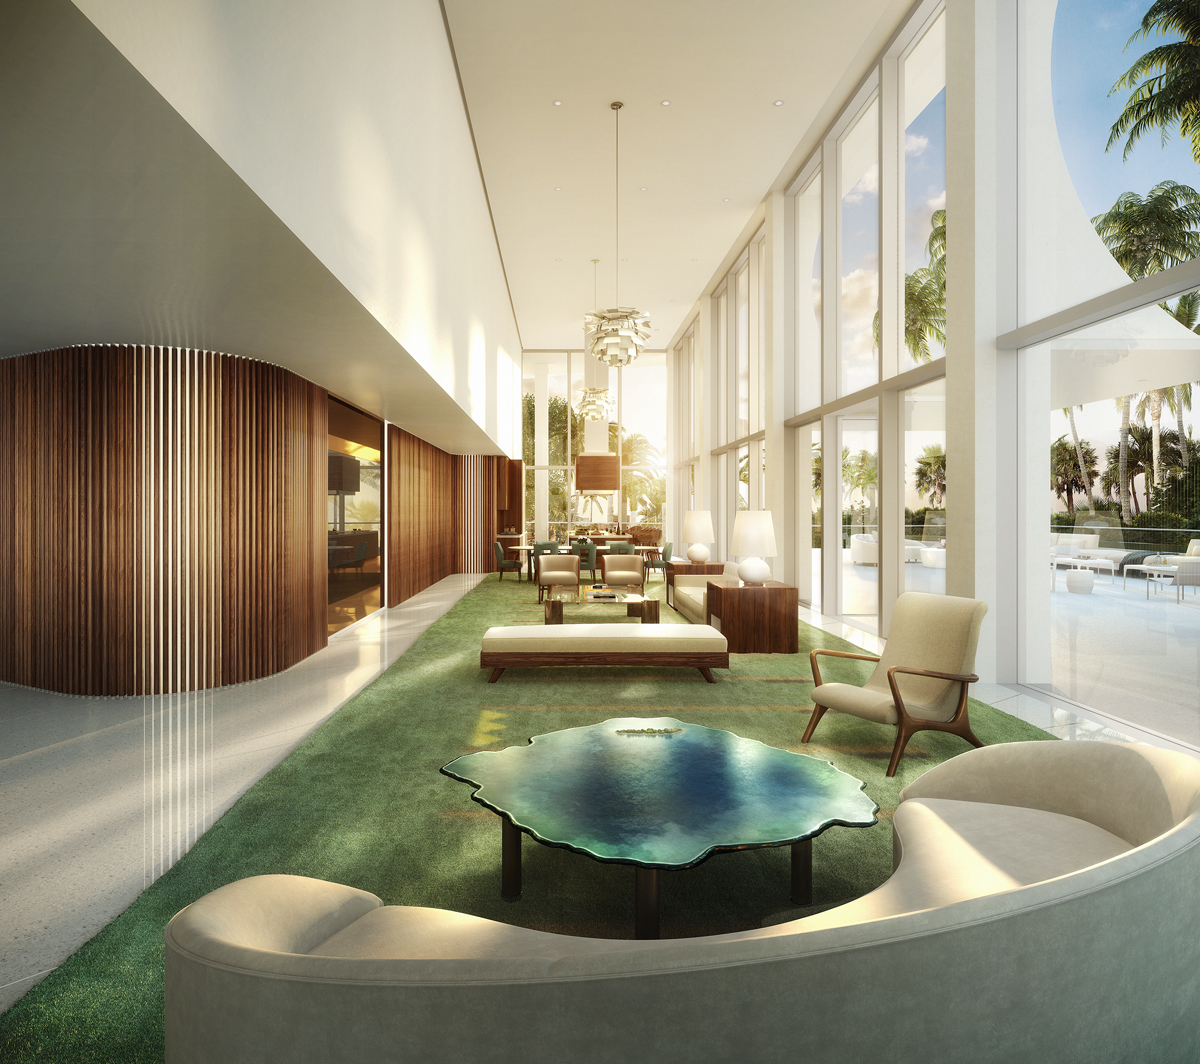 Jade signature Condominium Information